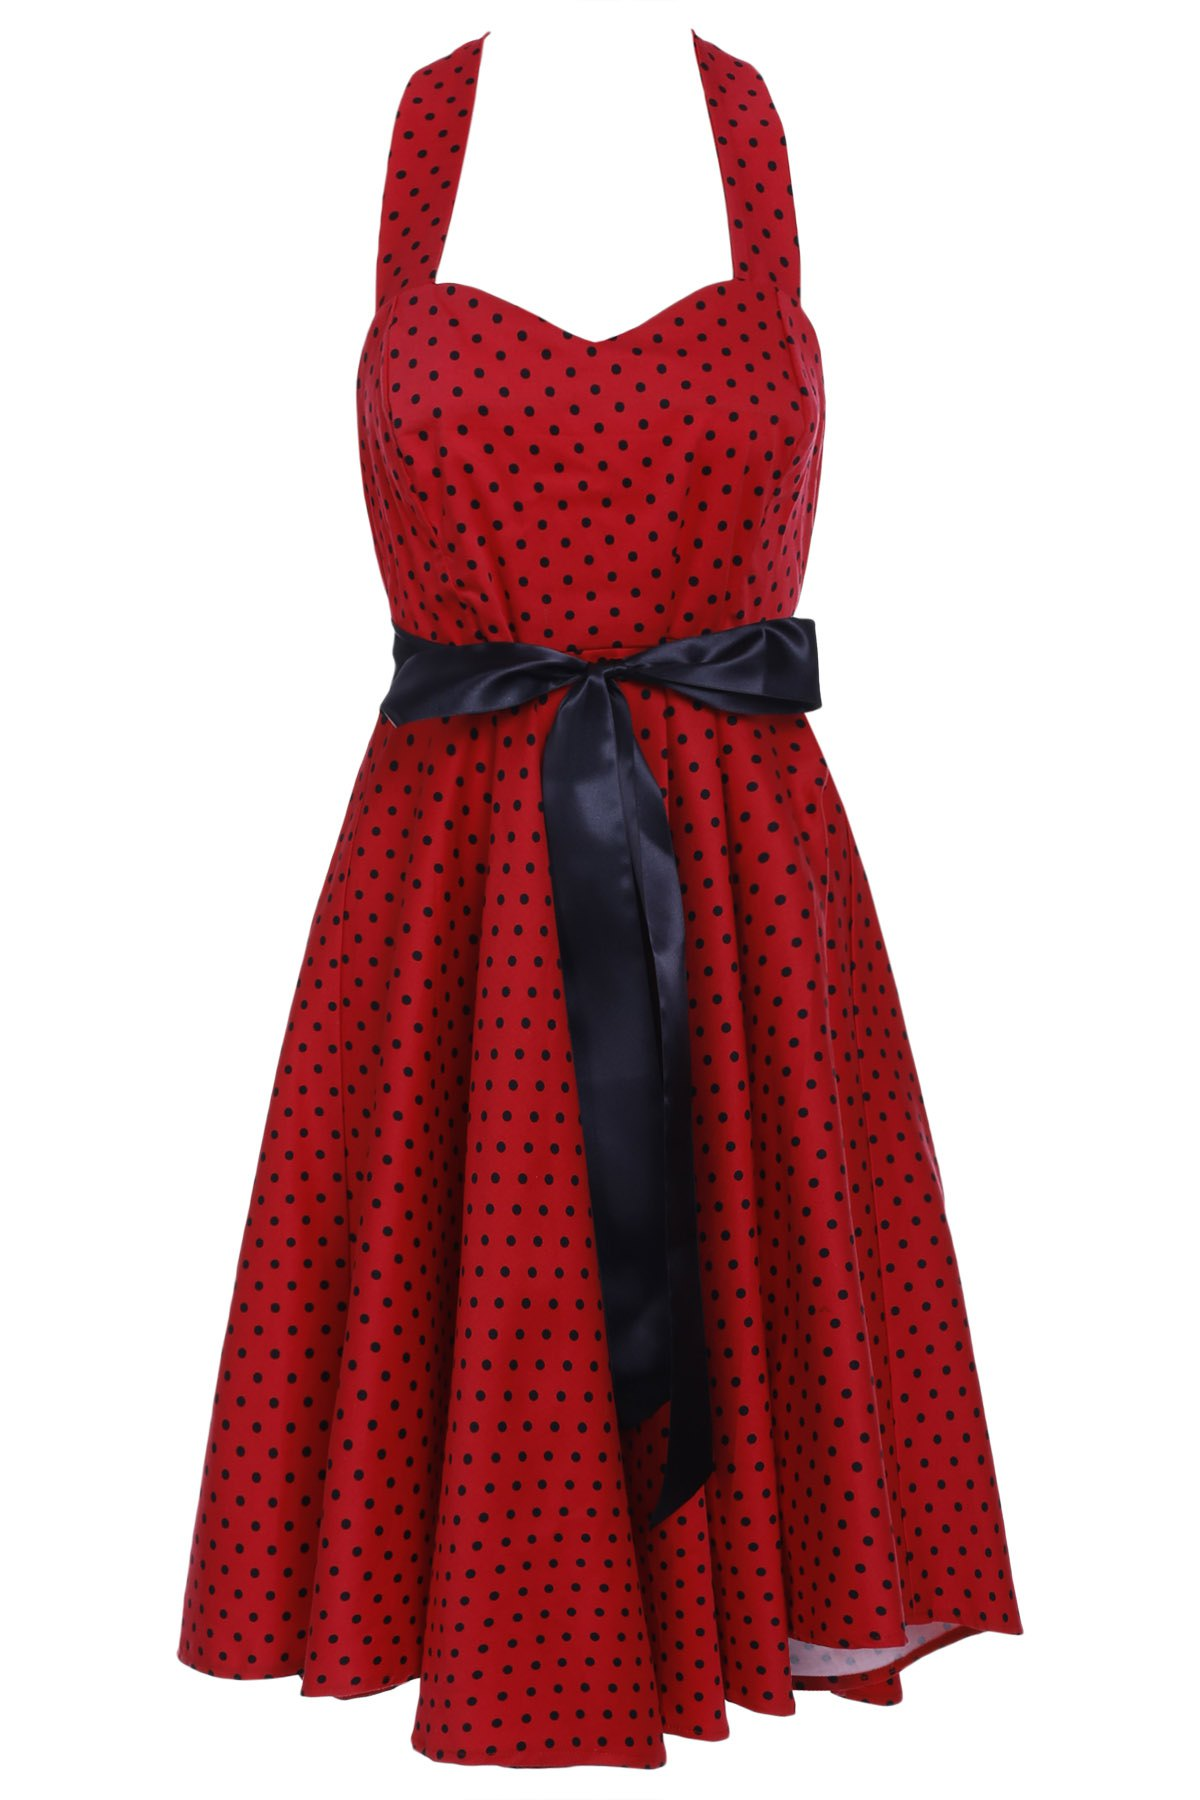 Fancy Vintage Halter Polka Dot Backless Cocktail Dress